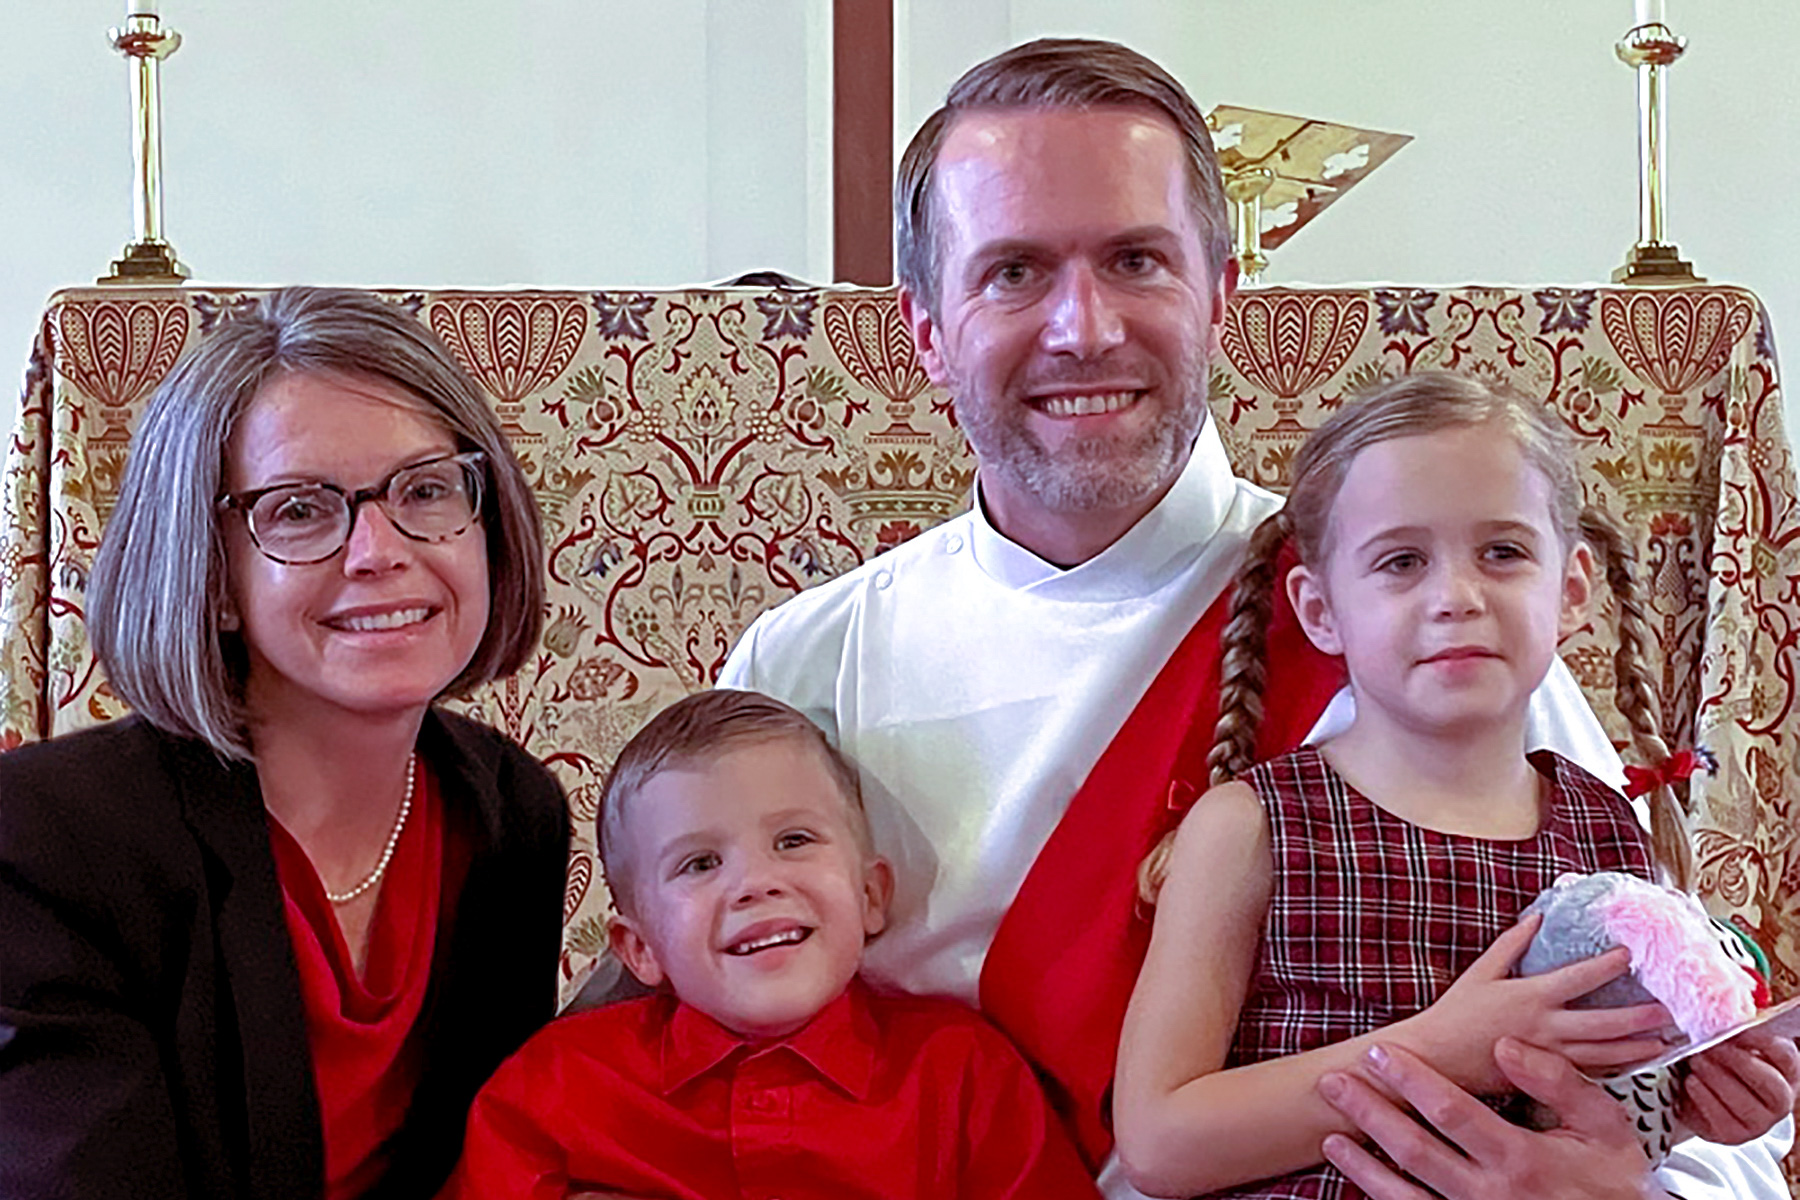 Meet the Rev. Ryan Wiksell, Transitional Deacon